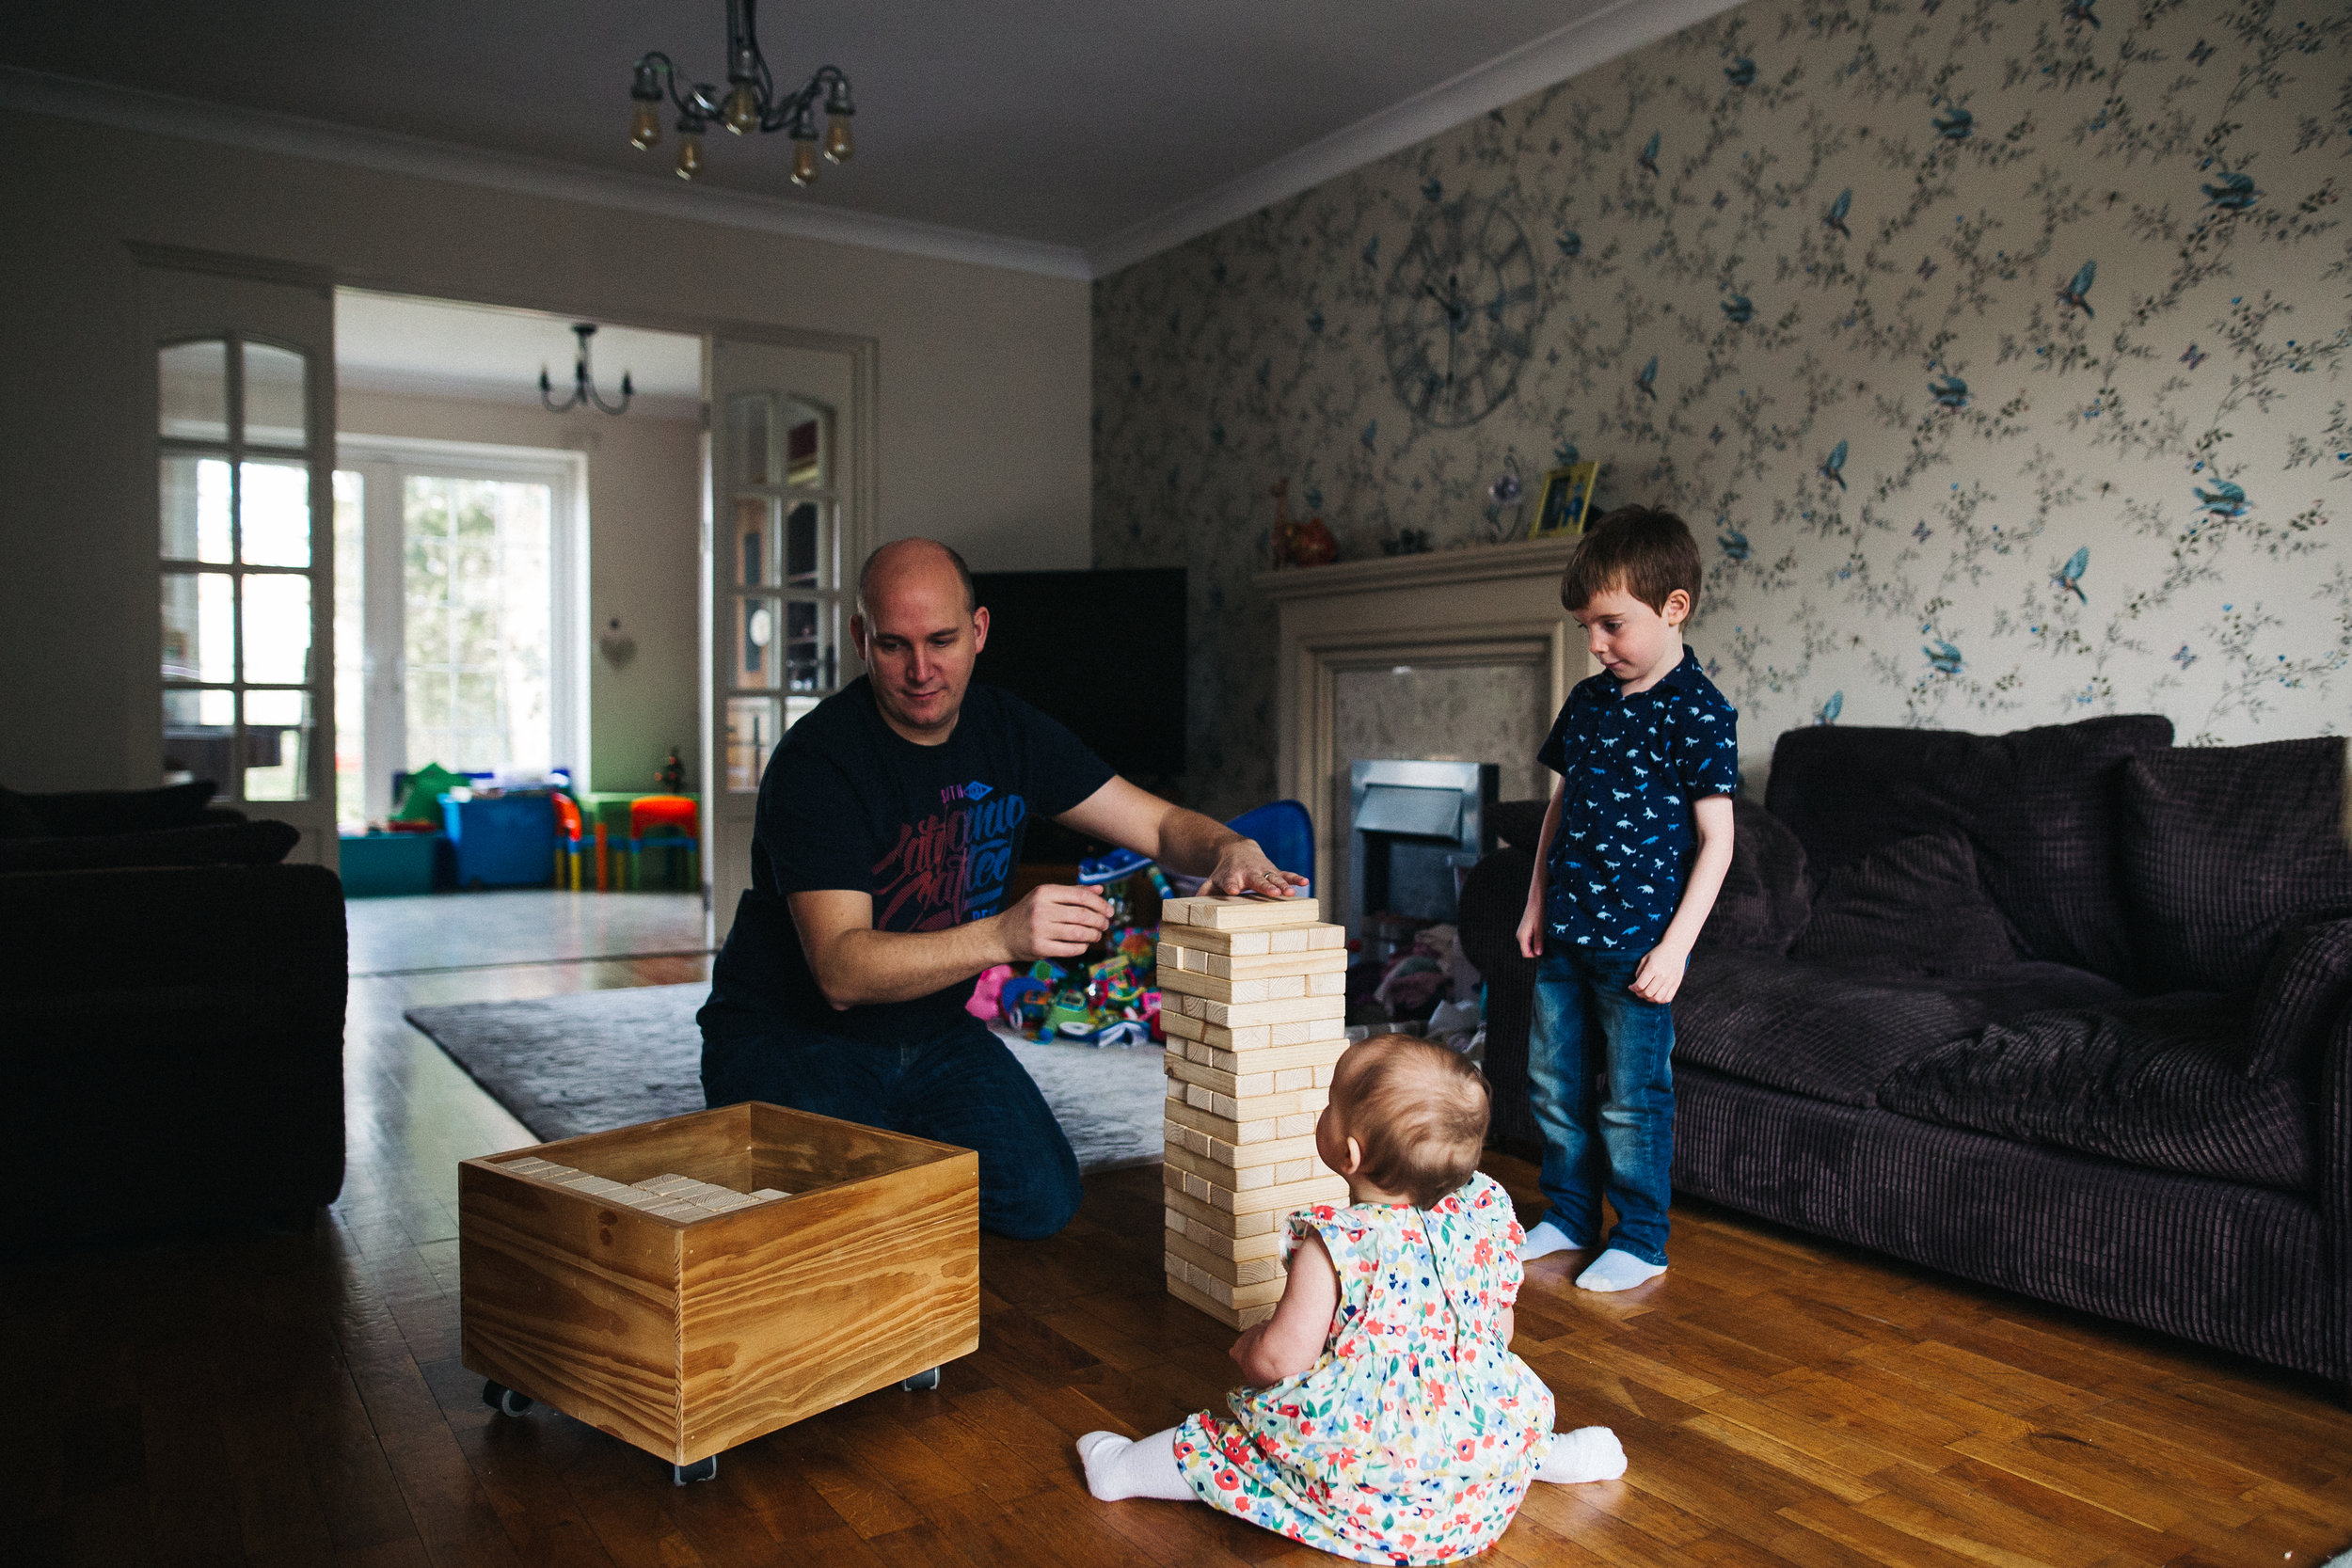 a dad, his son and baby girl are in the living room and building a wooden game. creative relaxed family photography teesside middlesbrough stockton north east